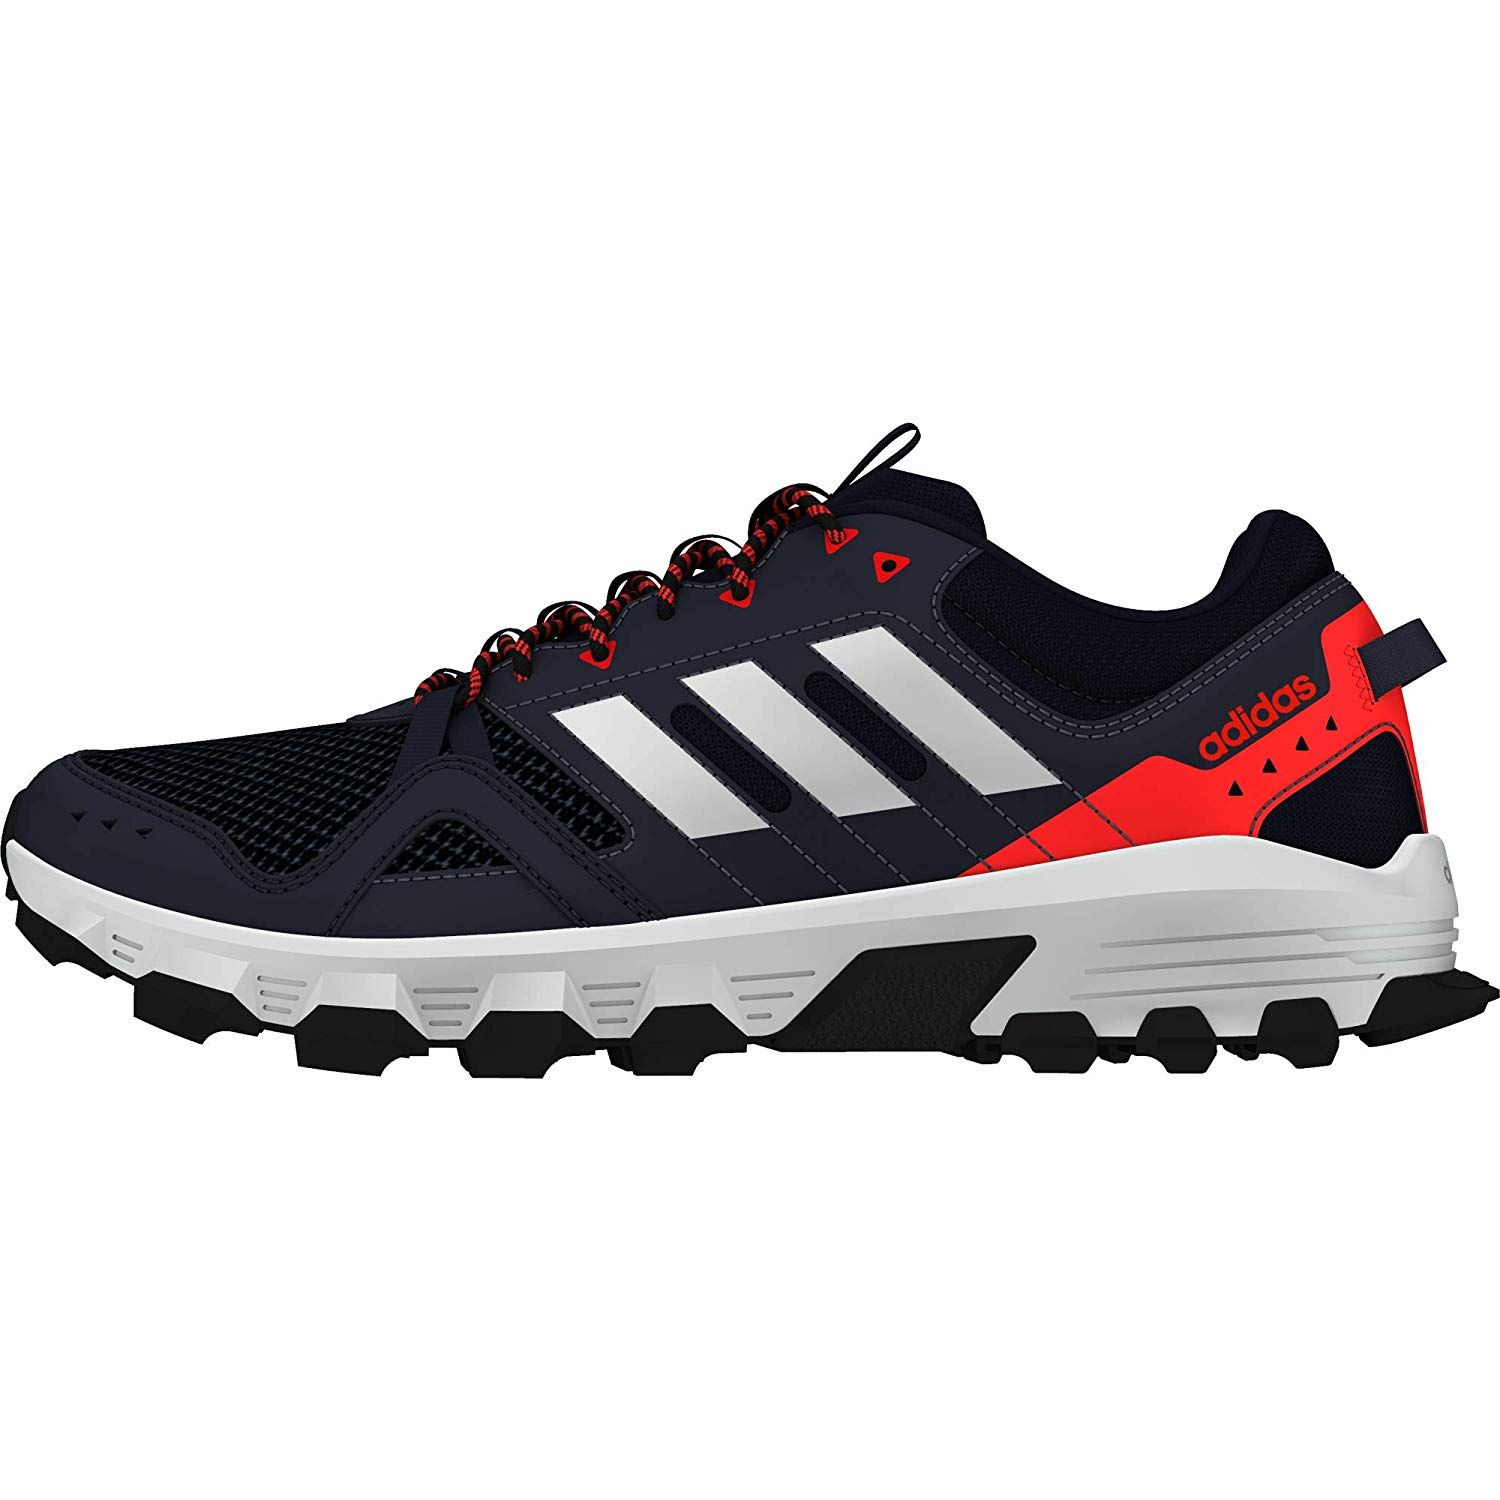 Trail Running Shoes From Amazon ** Click image to review